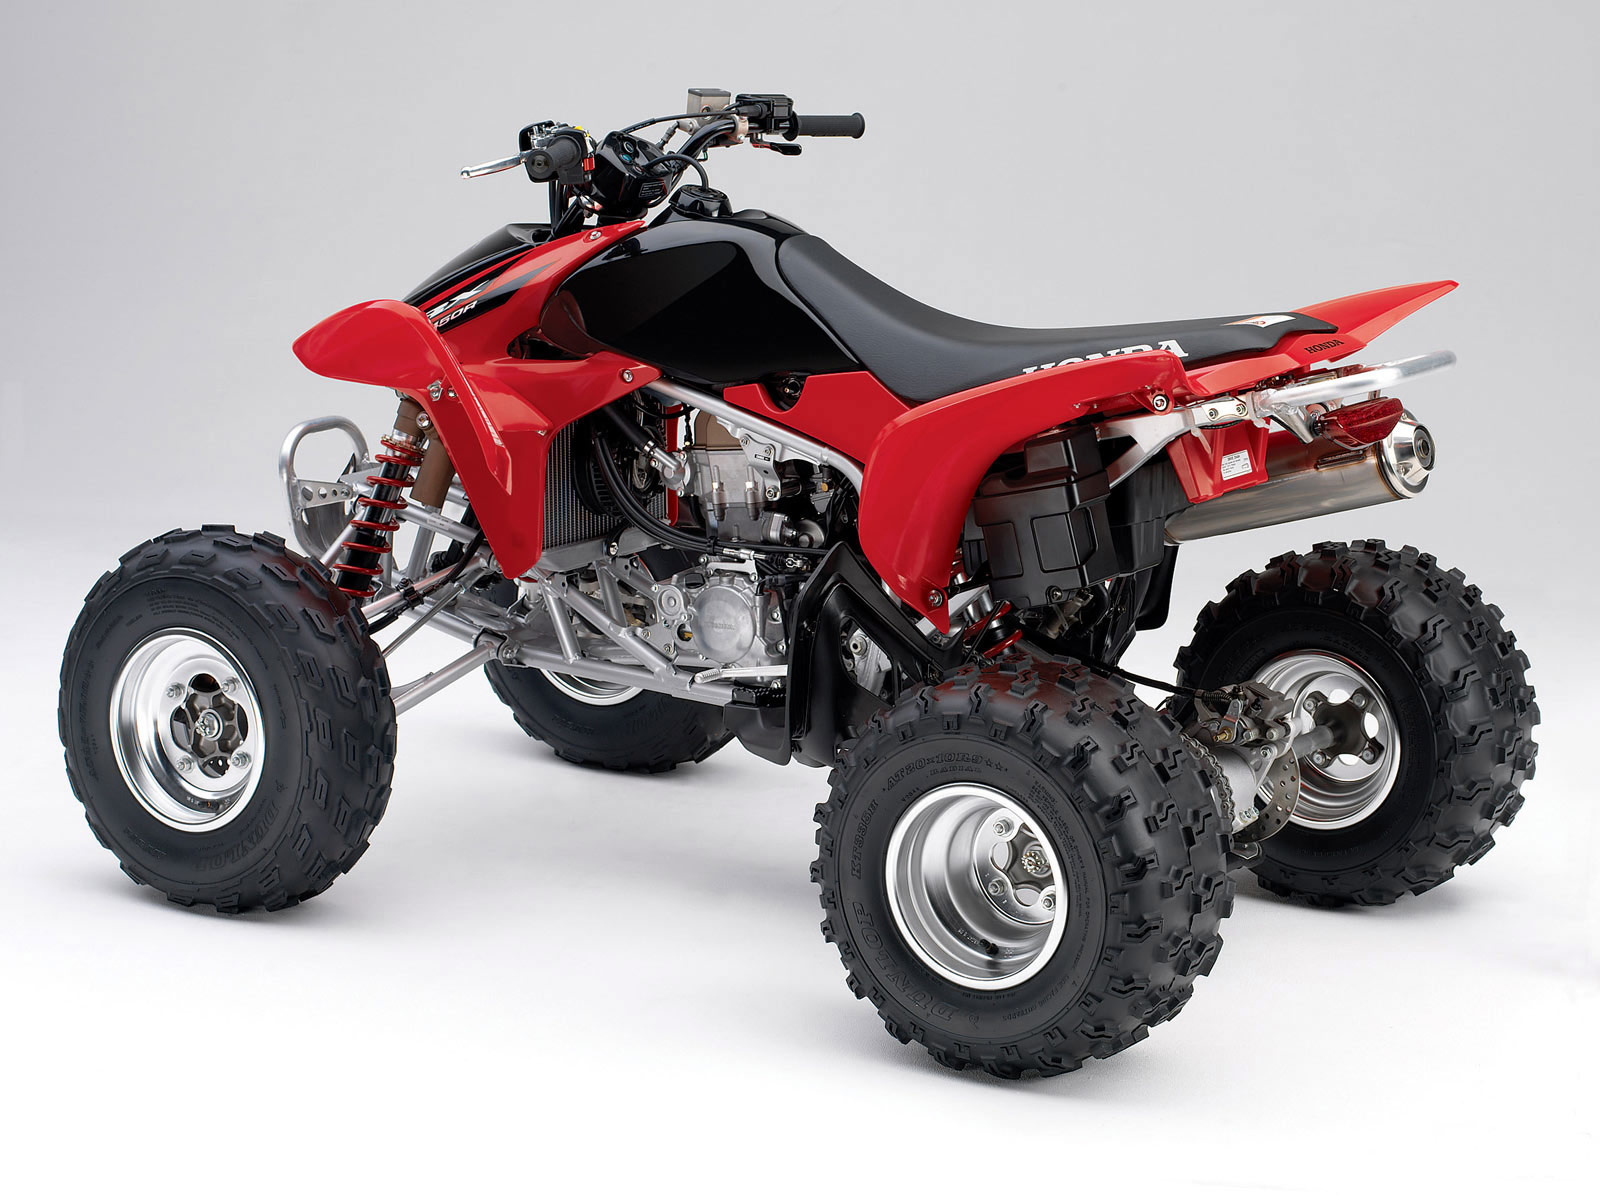 2006 HONDA TRX 450 R ATV wallpaper 1600x1200